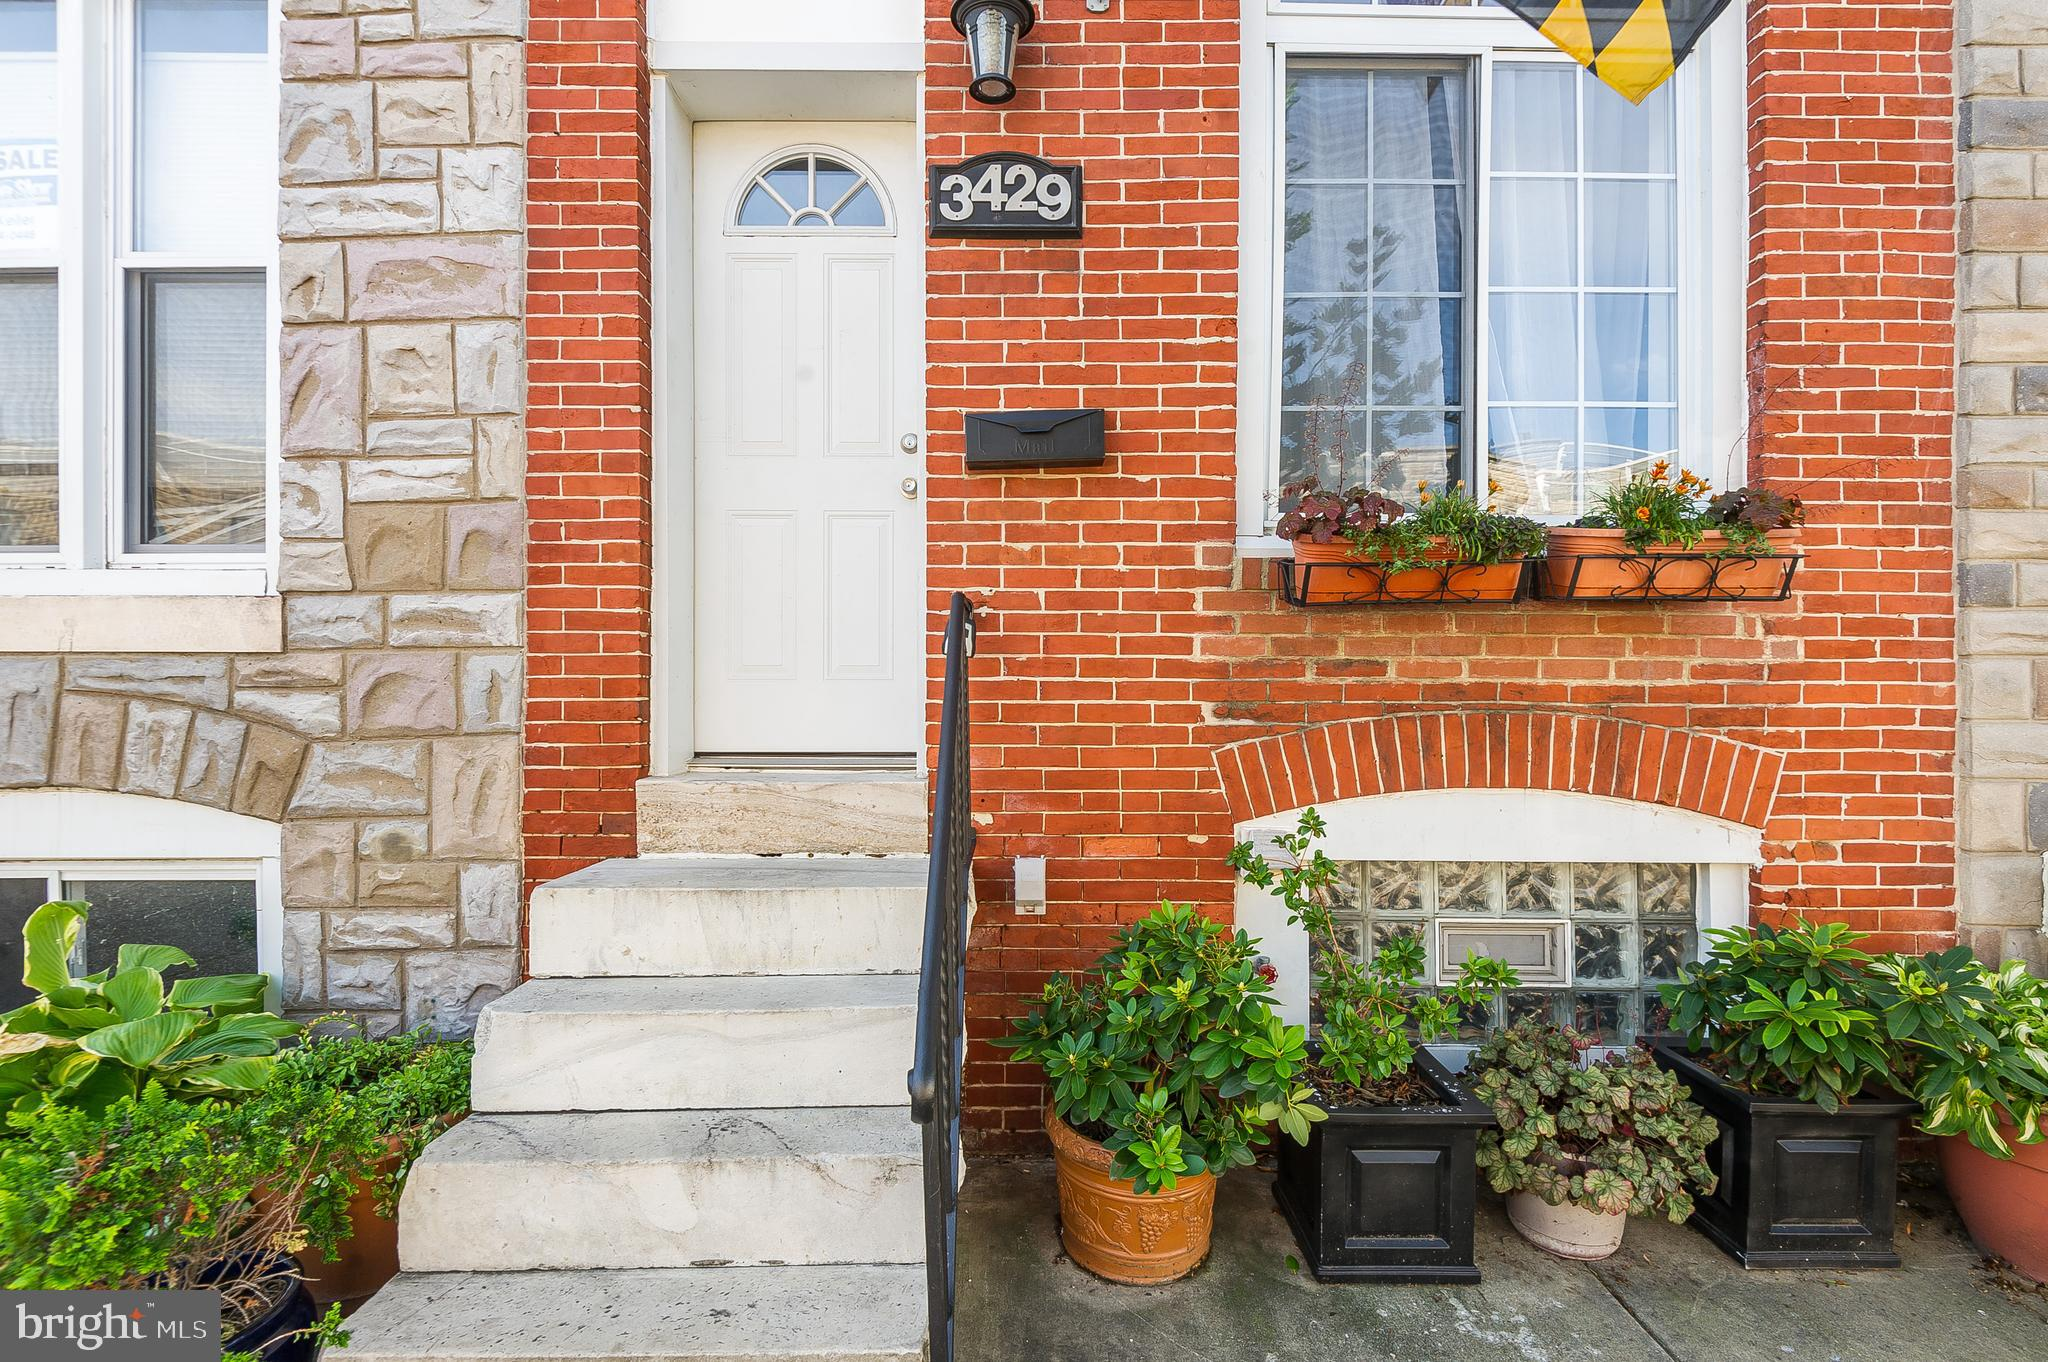 Welcome to 3429 E Lombard St. This beautifully re-done row home just a short walk from Patterson Park, Highlandtown, Canton, local markets, great restaurants, and the easiest access to I-95. Gleaming hardwood floors, stainless steel appliances, granite tile countertop, and a large custom spa style bathroom welcome you in this hidden gem.